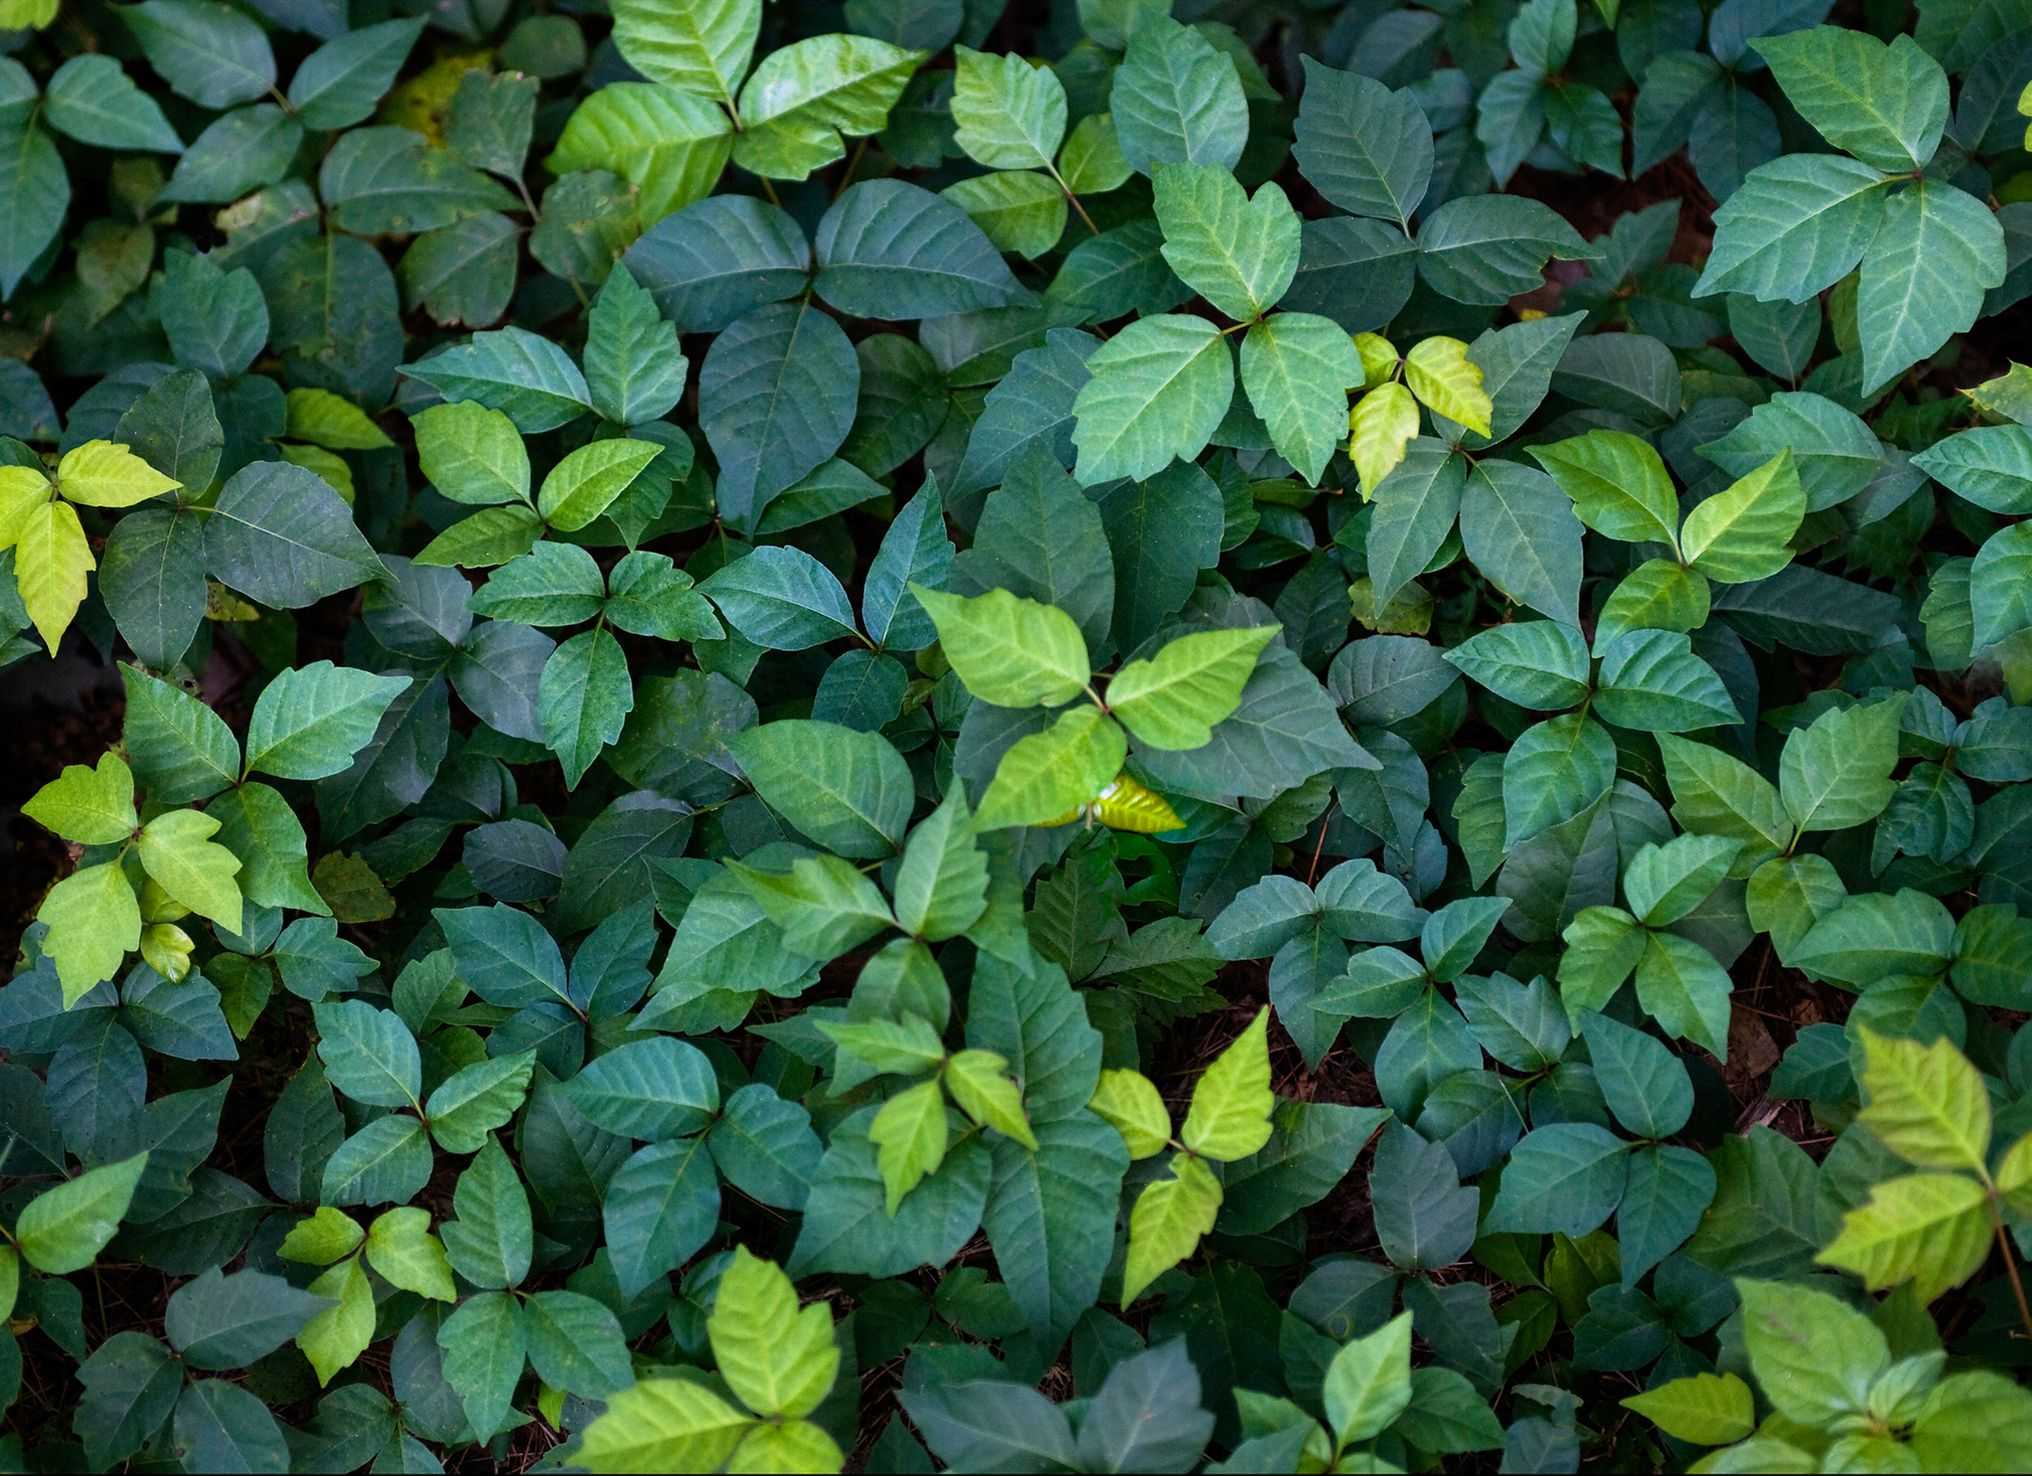 Itchy Rash Plants Identify These Weeds To Avoid Them